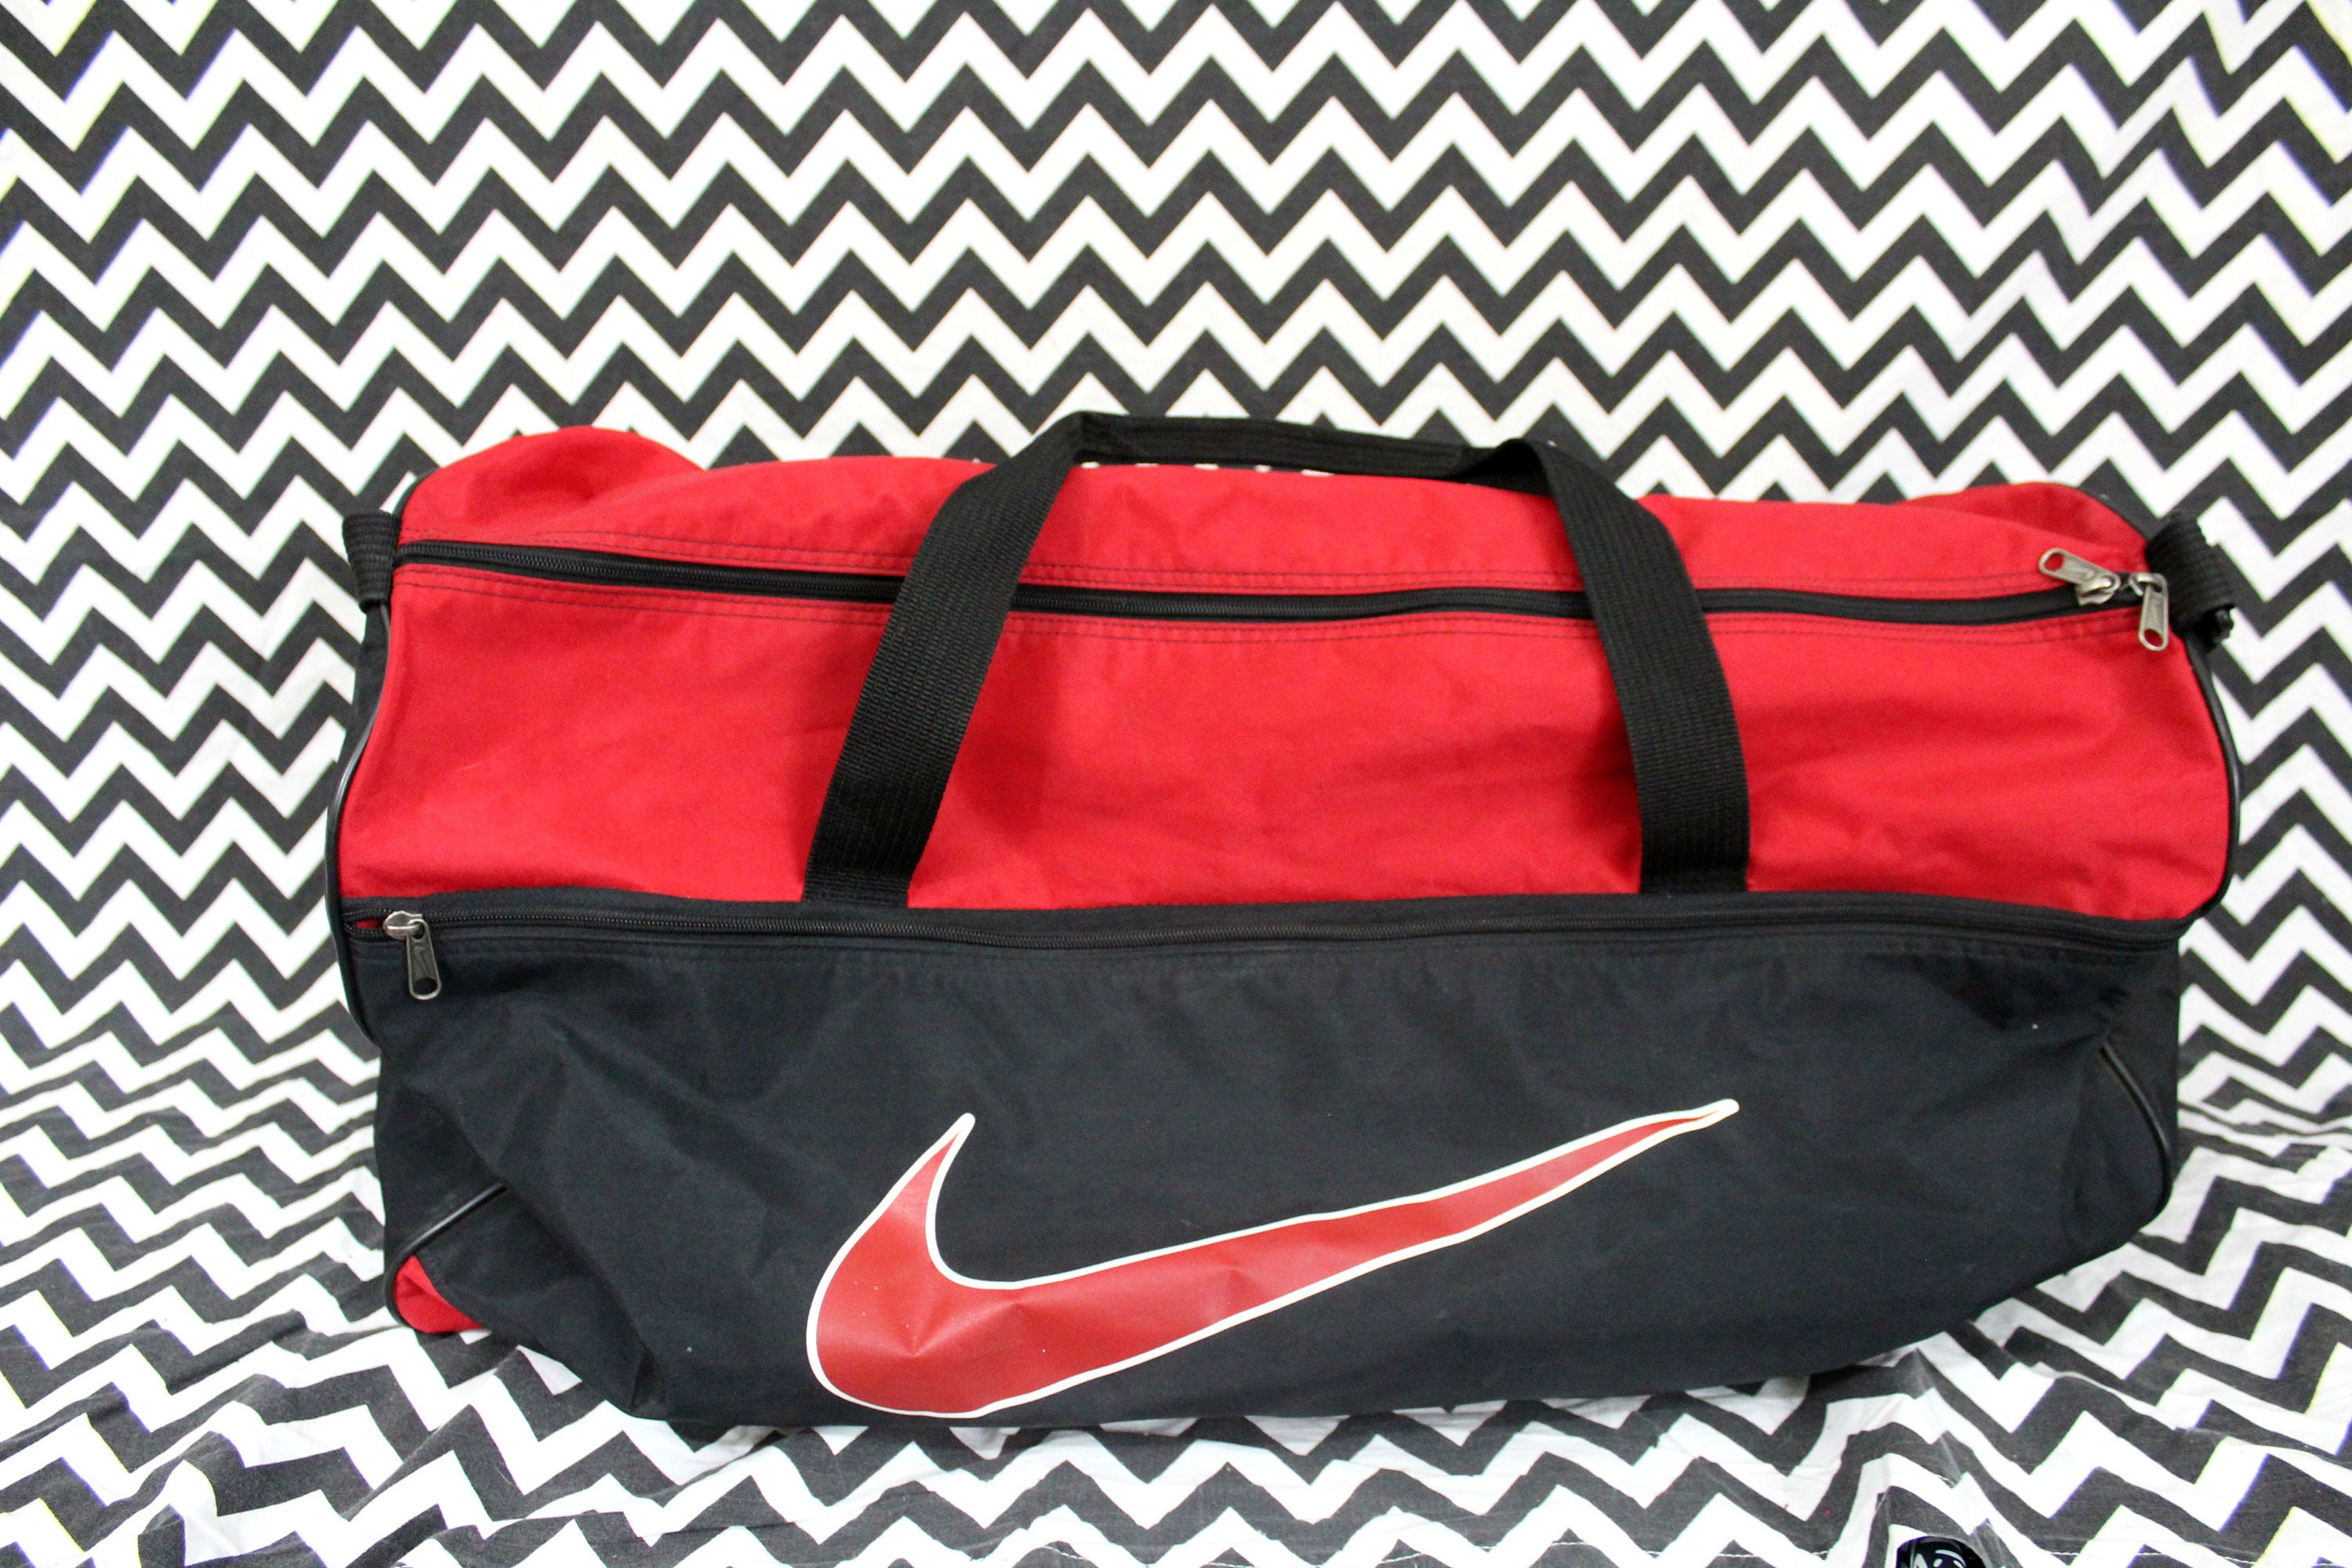 Vintage Nike Duffel Bag. 90s Hip Hop Overnight Duffel Bag. Retro 80s or 90s  Carry On Bag. Old School Nike Red And Black Logo Duffel Bag. 71feec84f5f3d